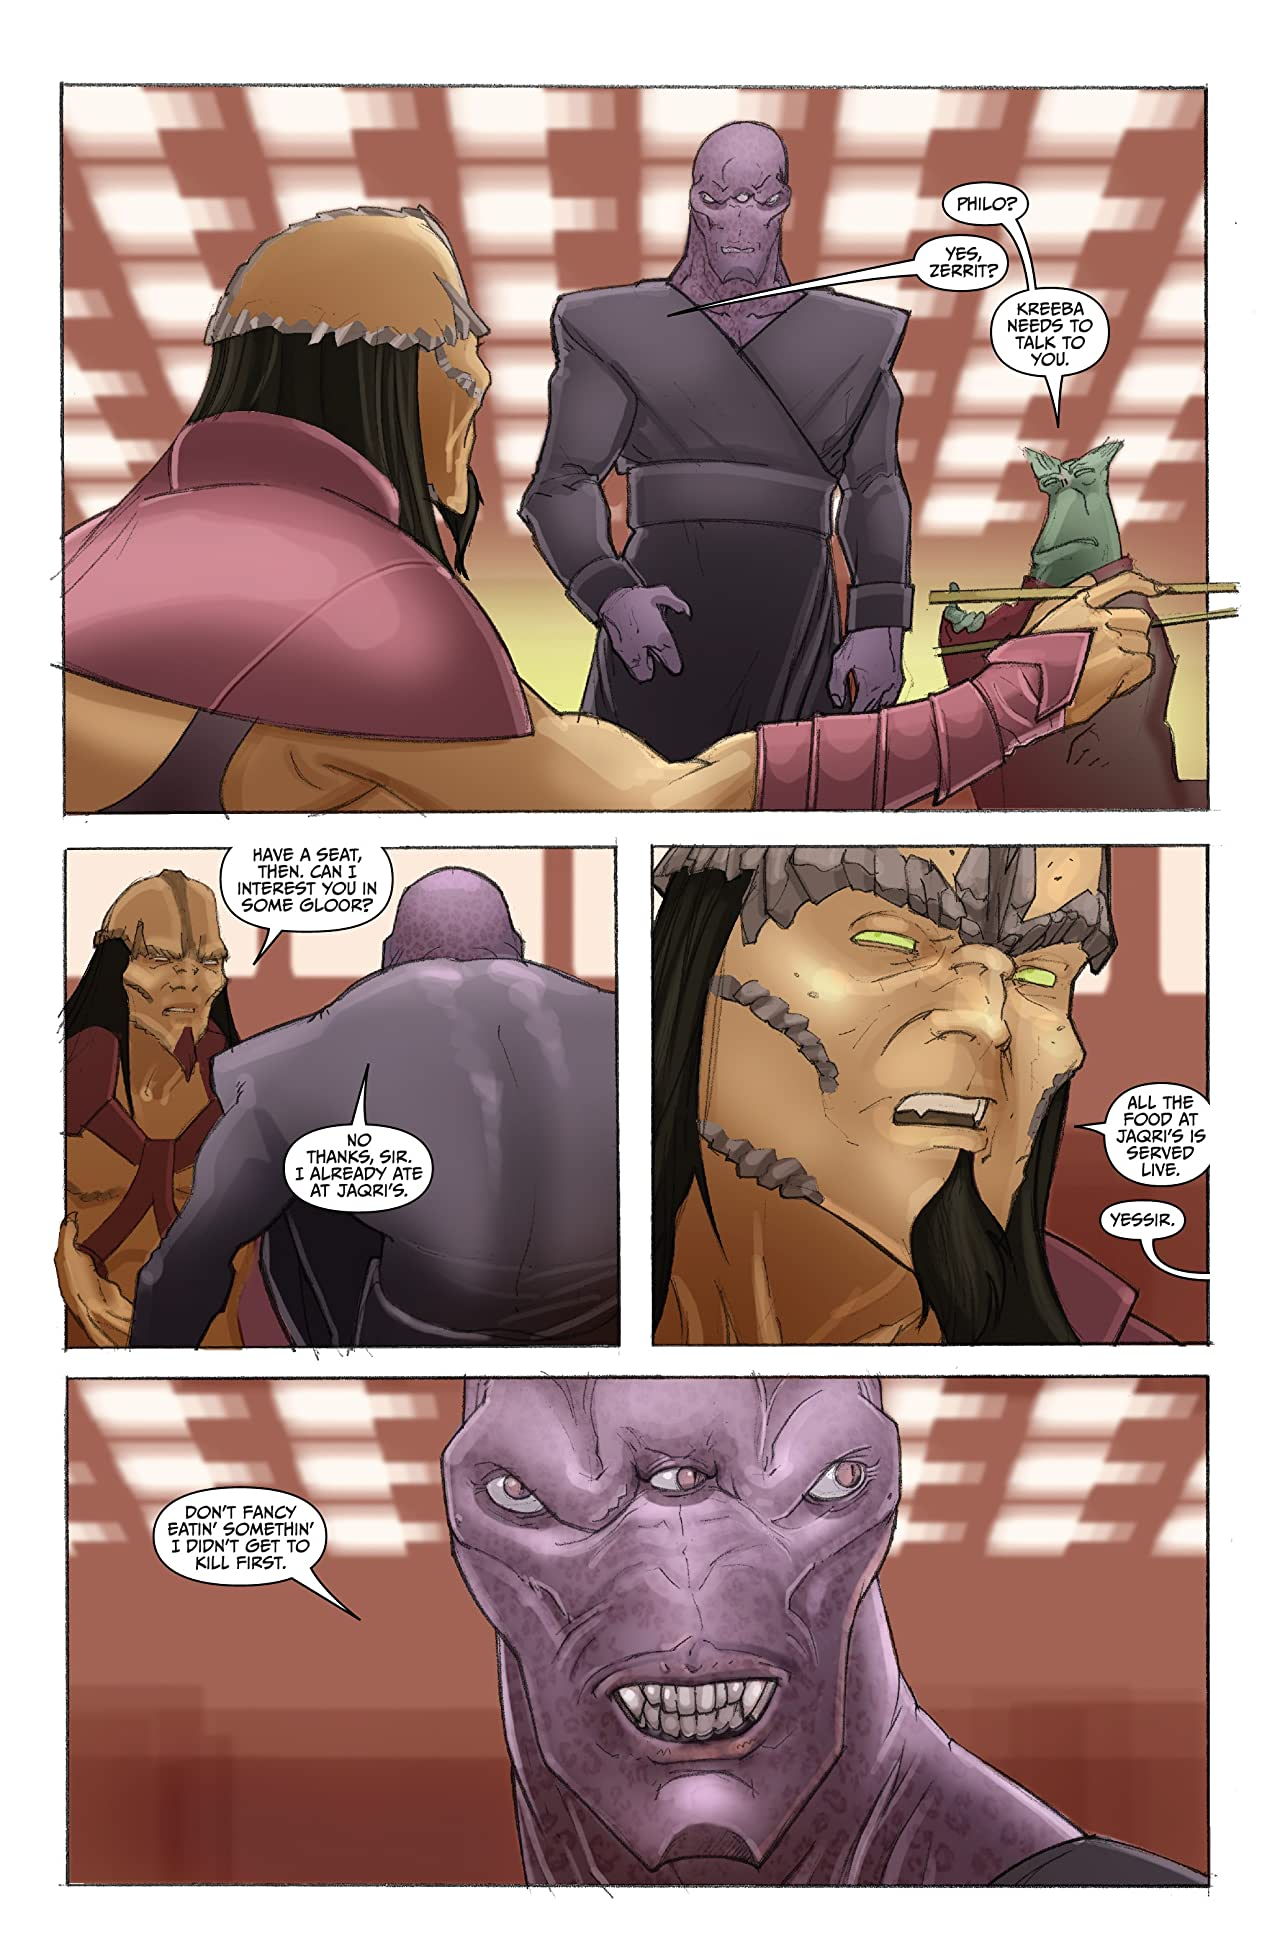 Farscape: Uncharted Tales Vol. 3: D'Argo's Quest #2 (of 4)